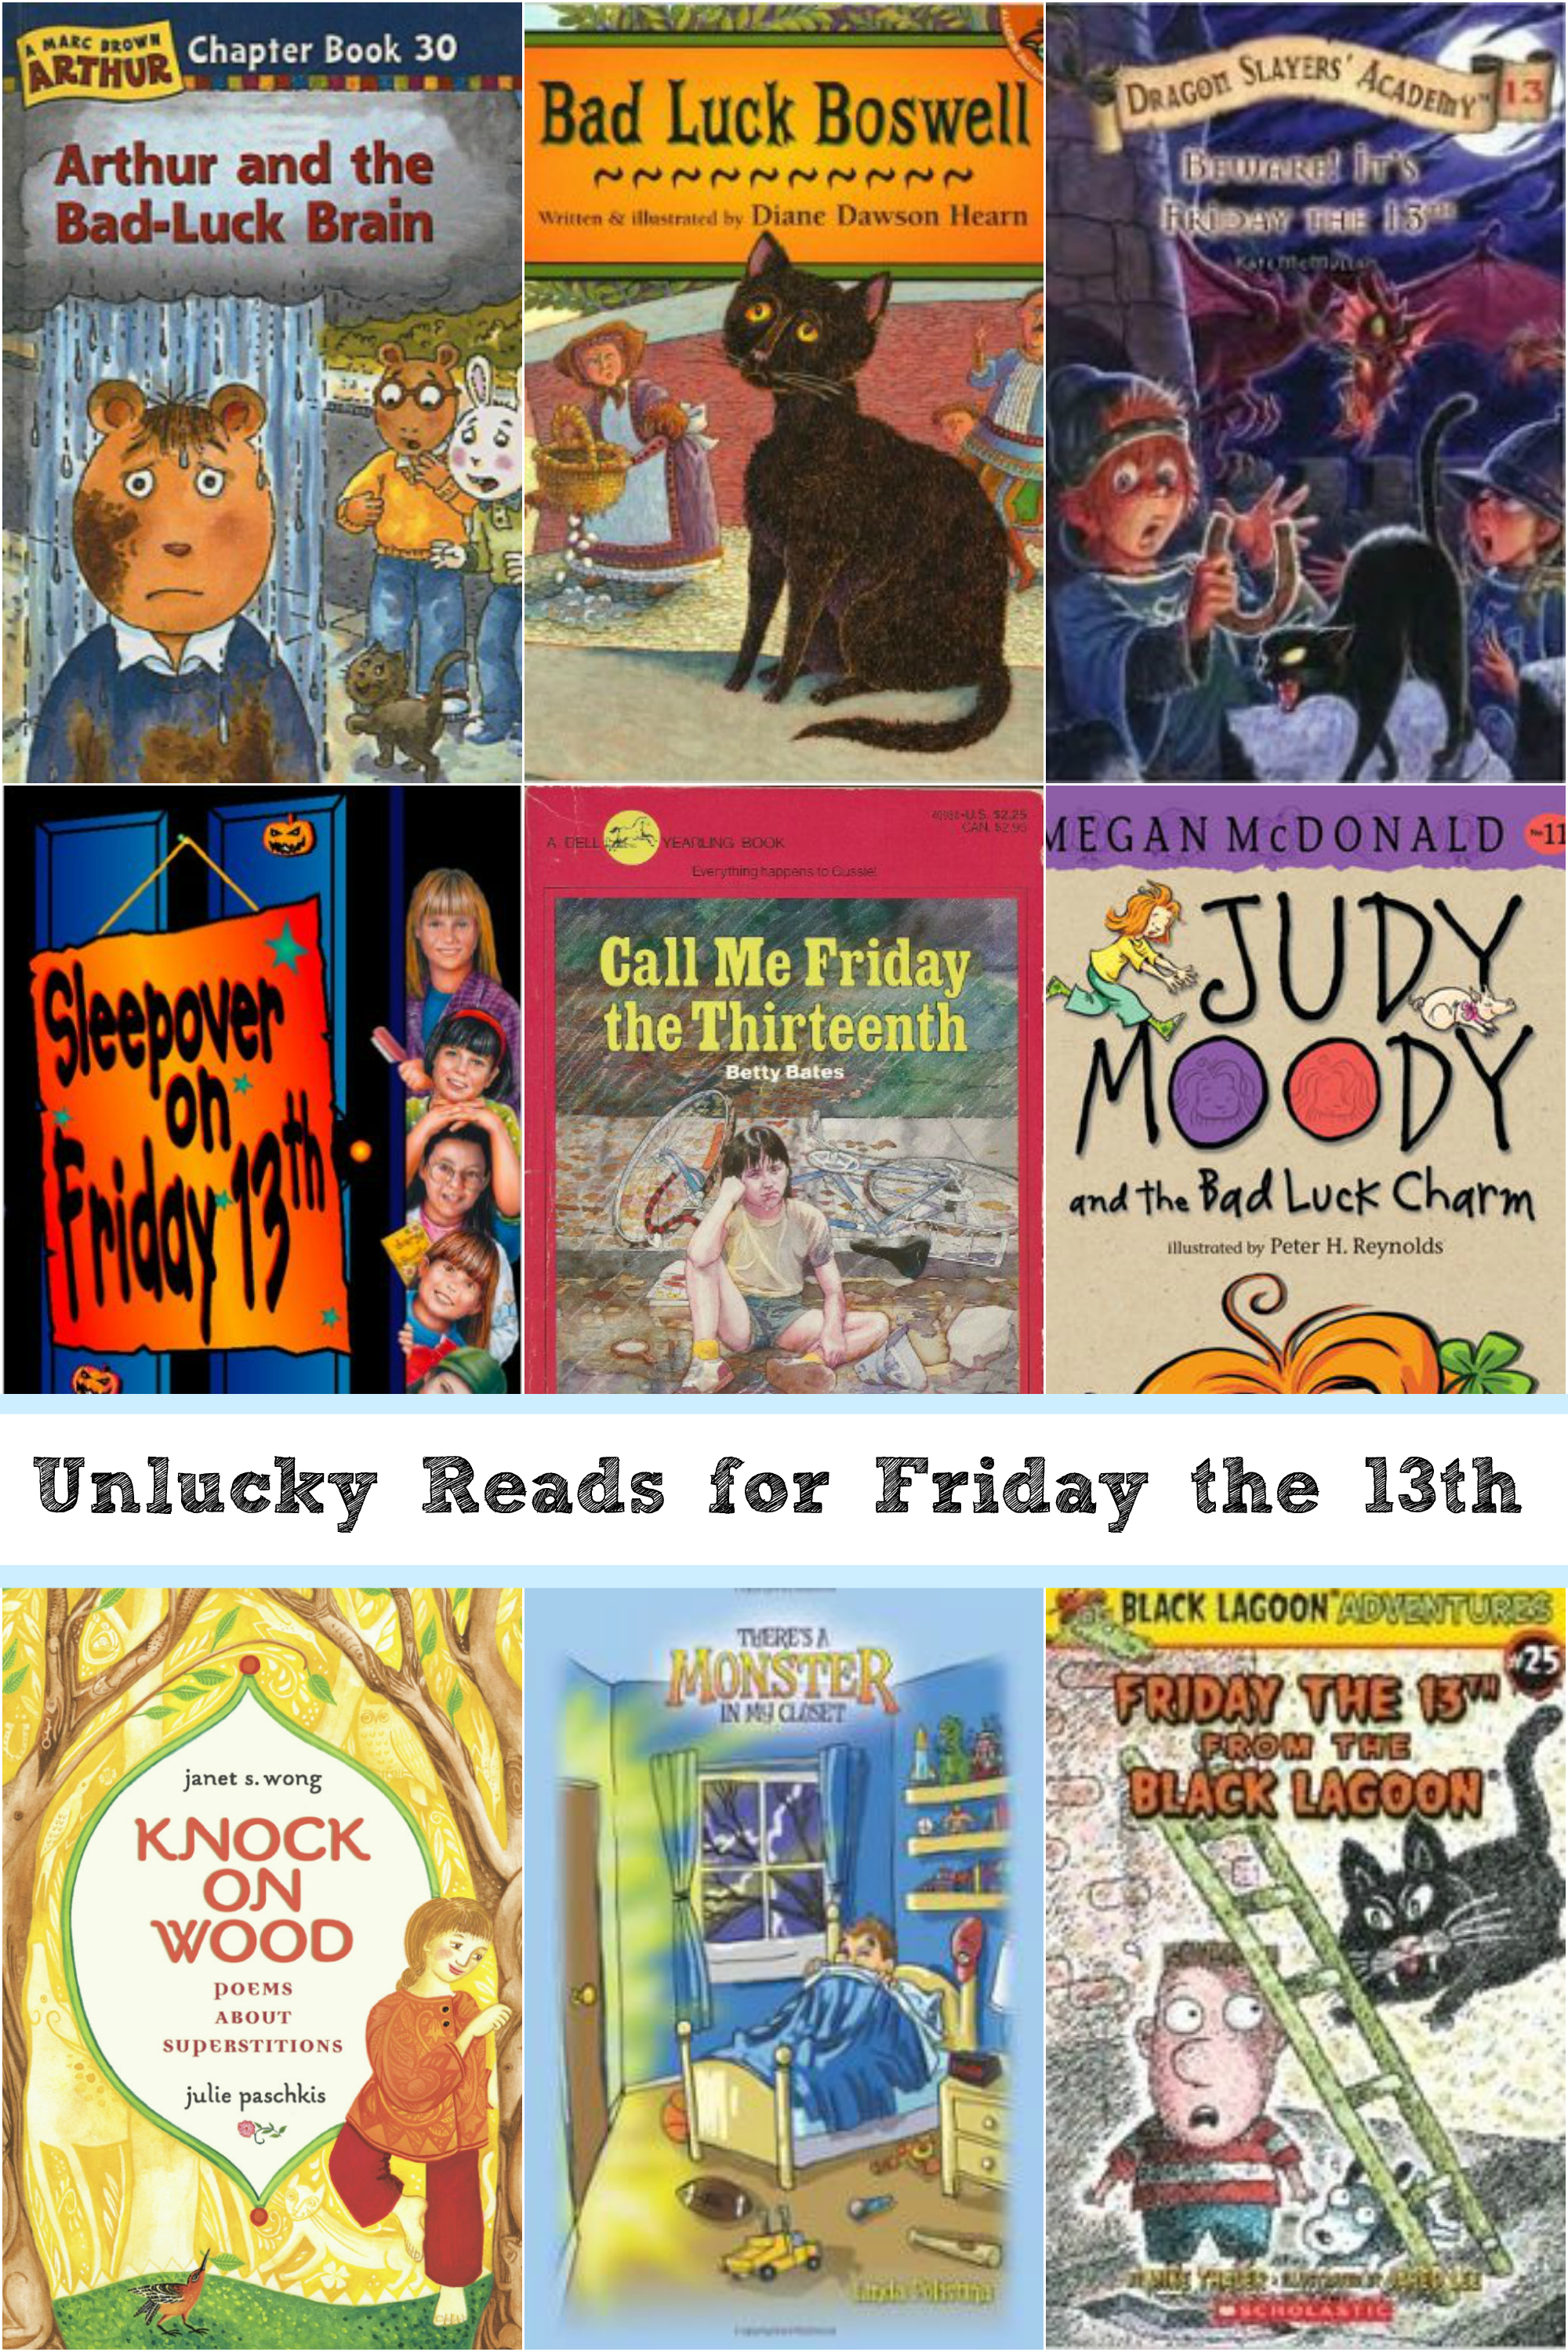 Unlucky Reads for Kids on Friday the 13th - Red Apple Reading